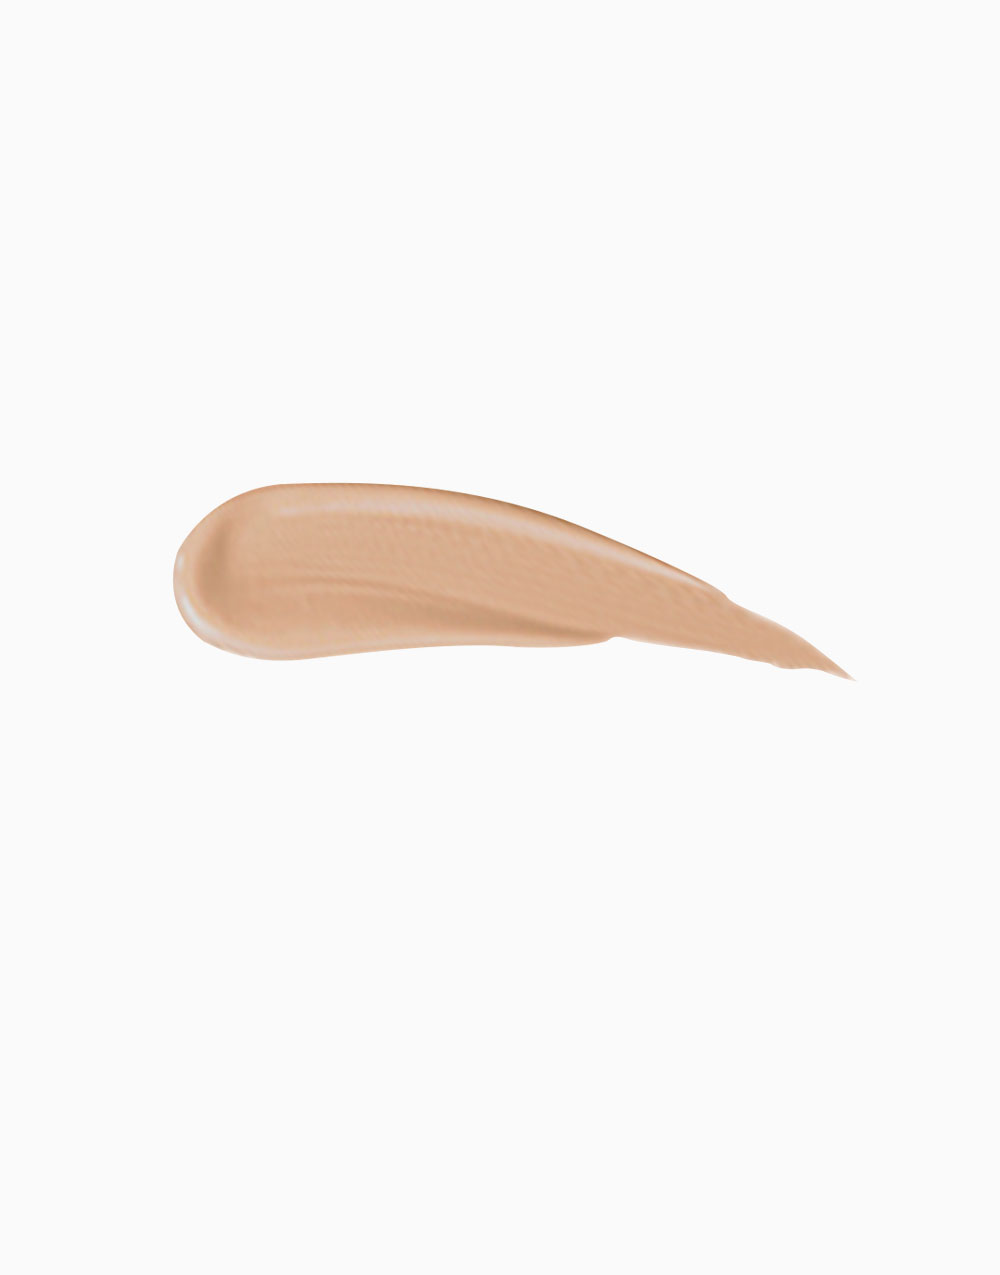 Cover Perfection Tip Concealer  by The Saem | 02 Rich Beige